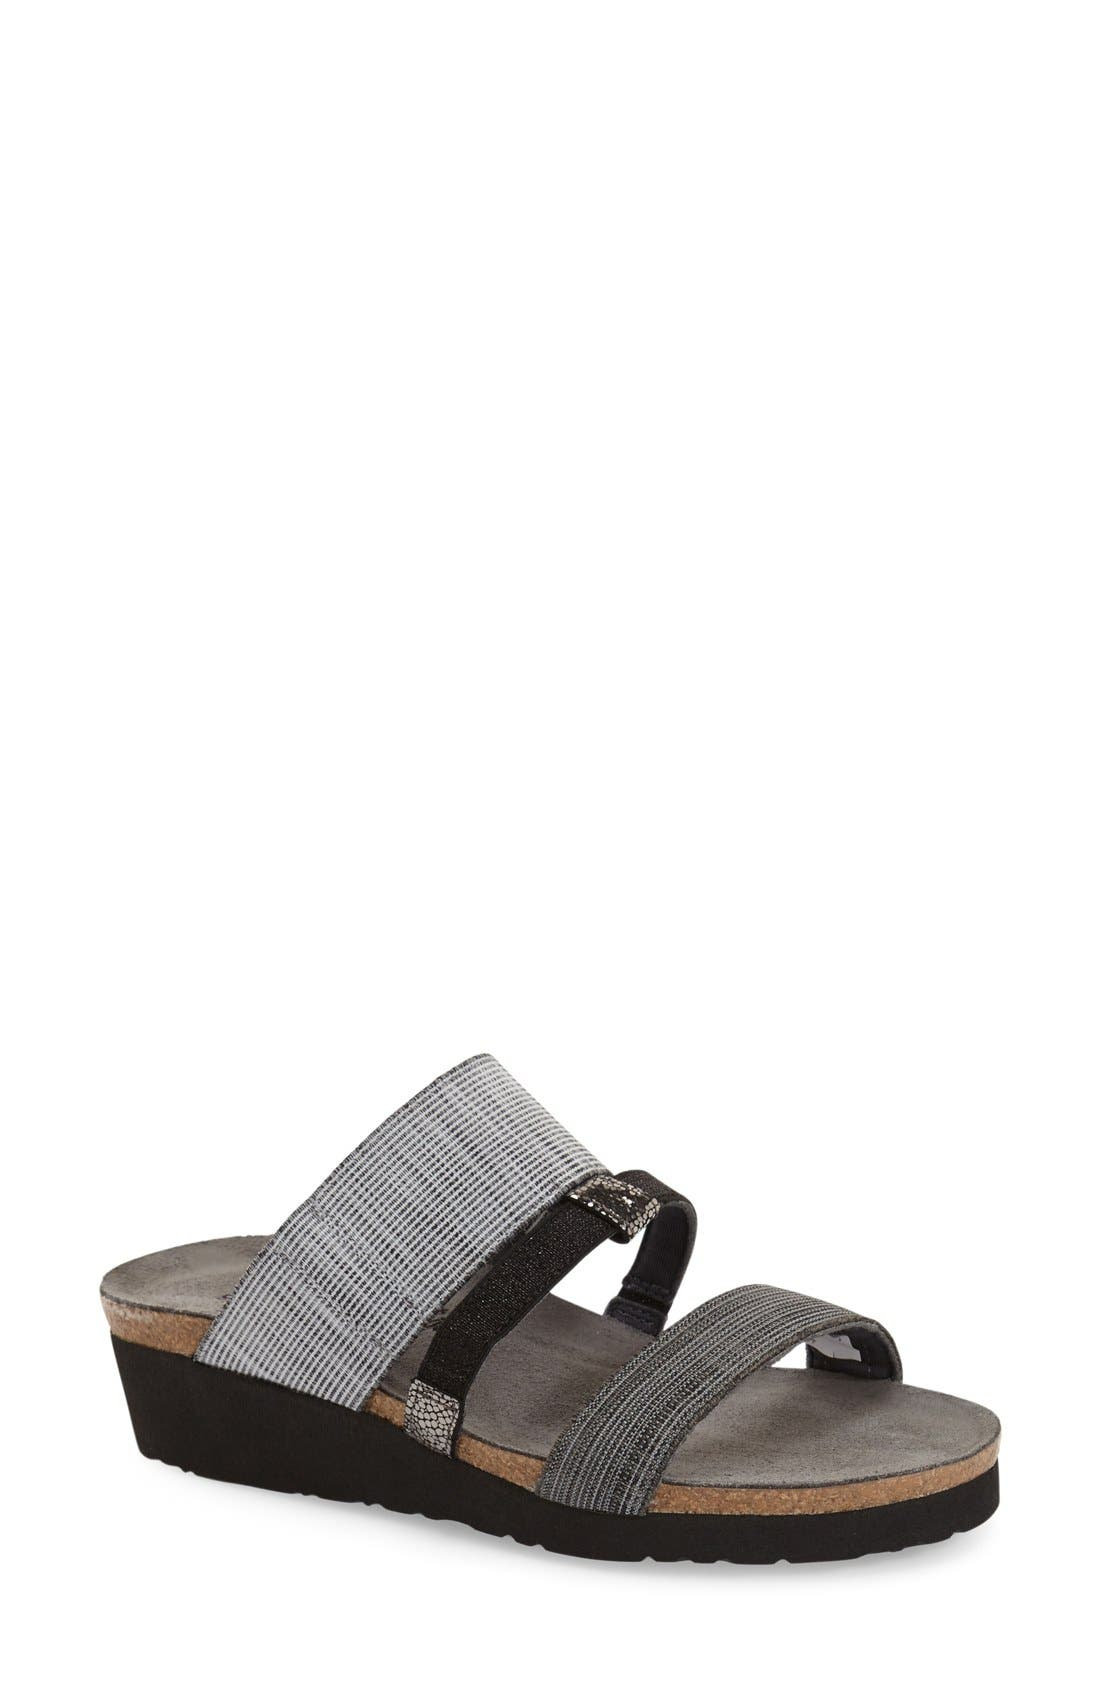 'Brenda' Slip-On Sandal,                         Main,                         color, GREY/ BLACK LEATHER FABRIC